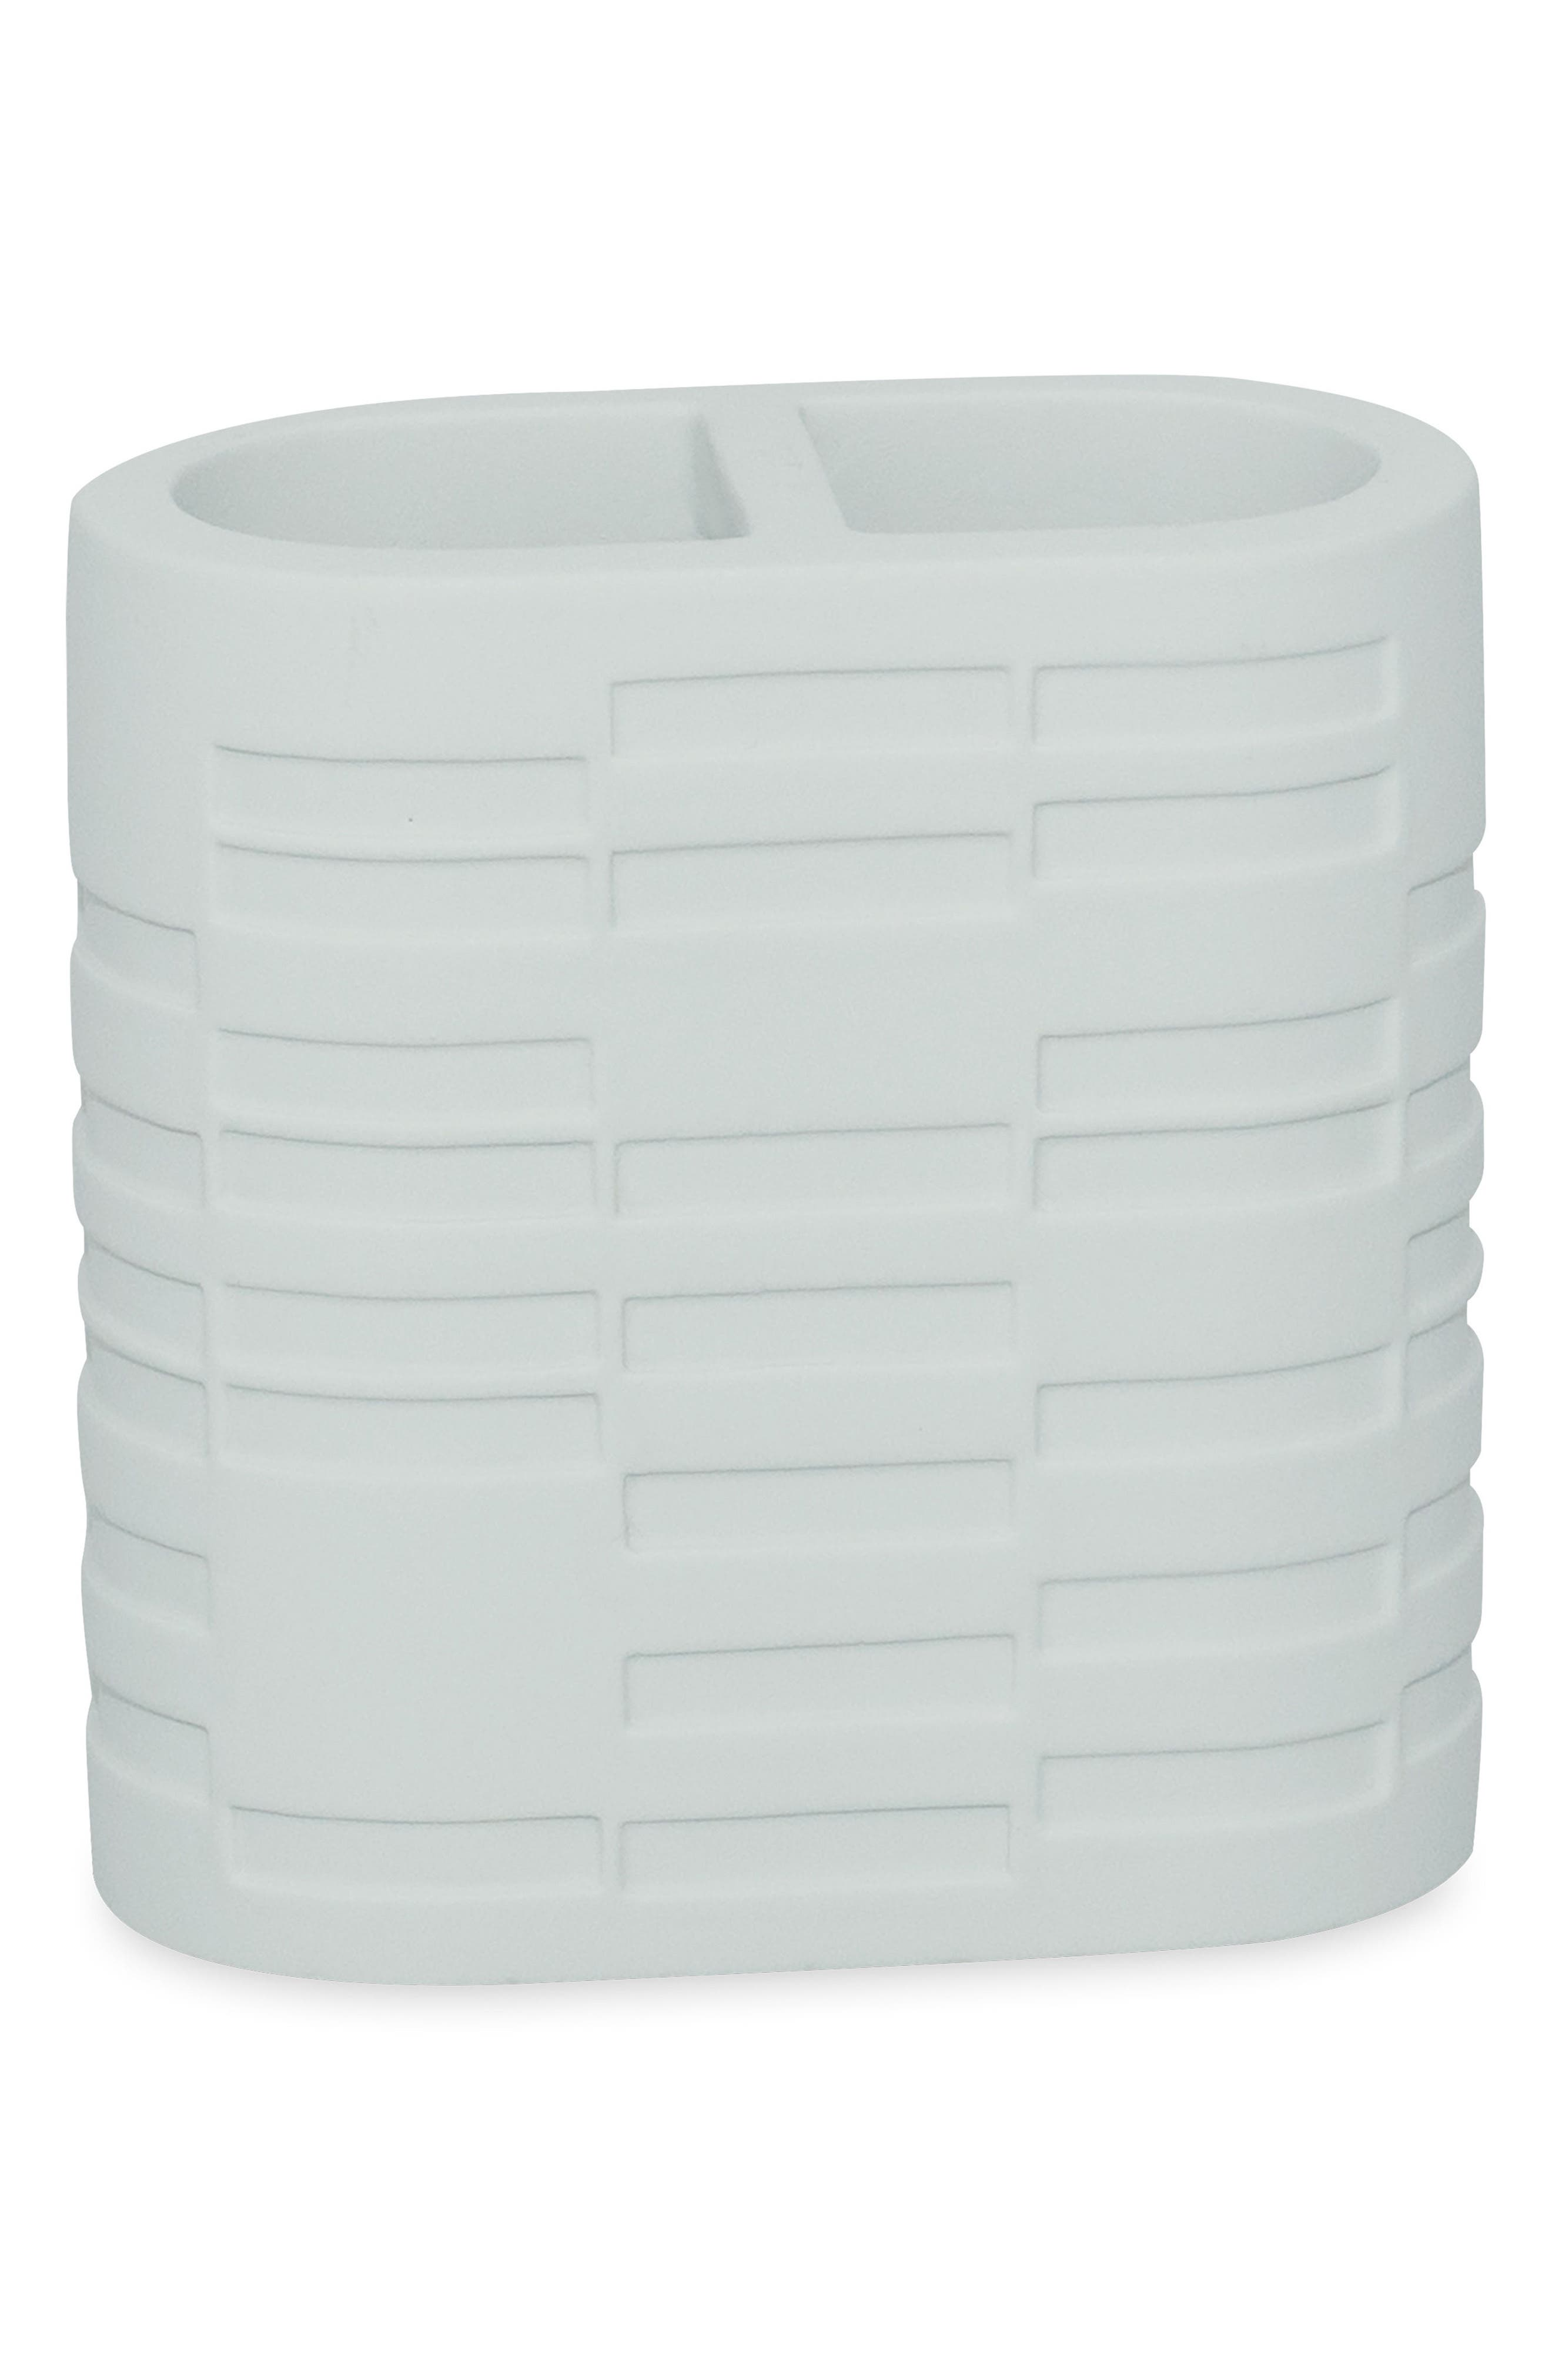 High Rise Toothbrush Holder,                             Main thumbnail 3, color,